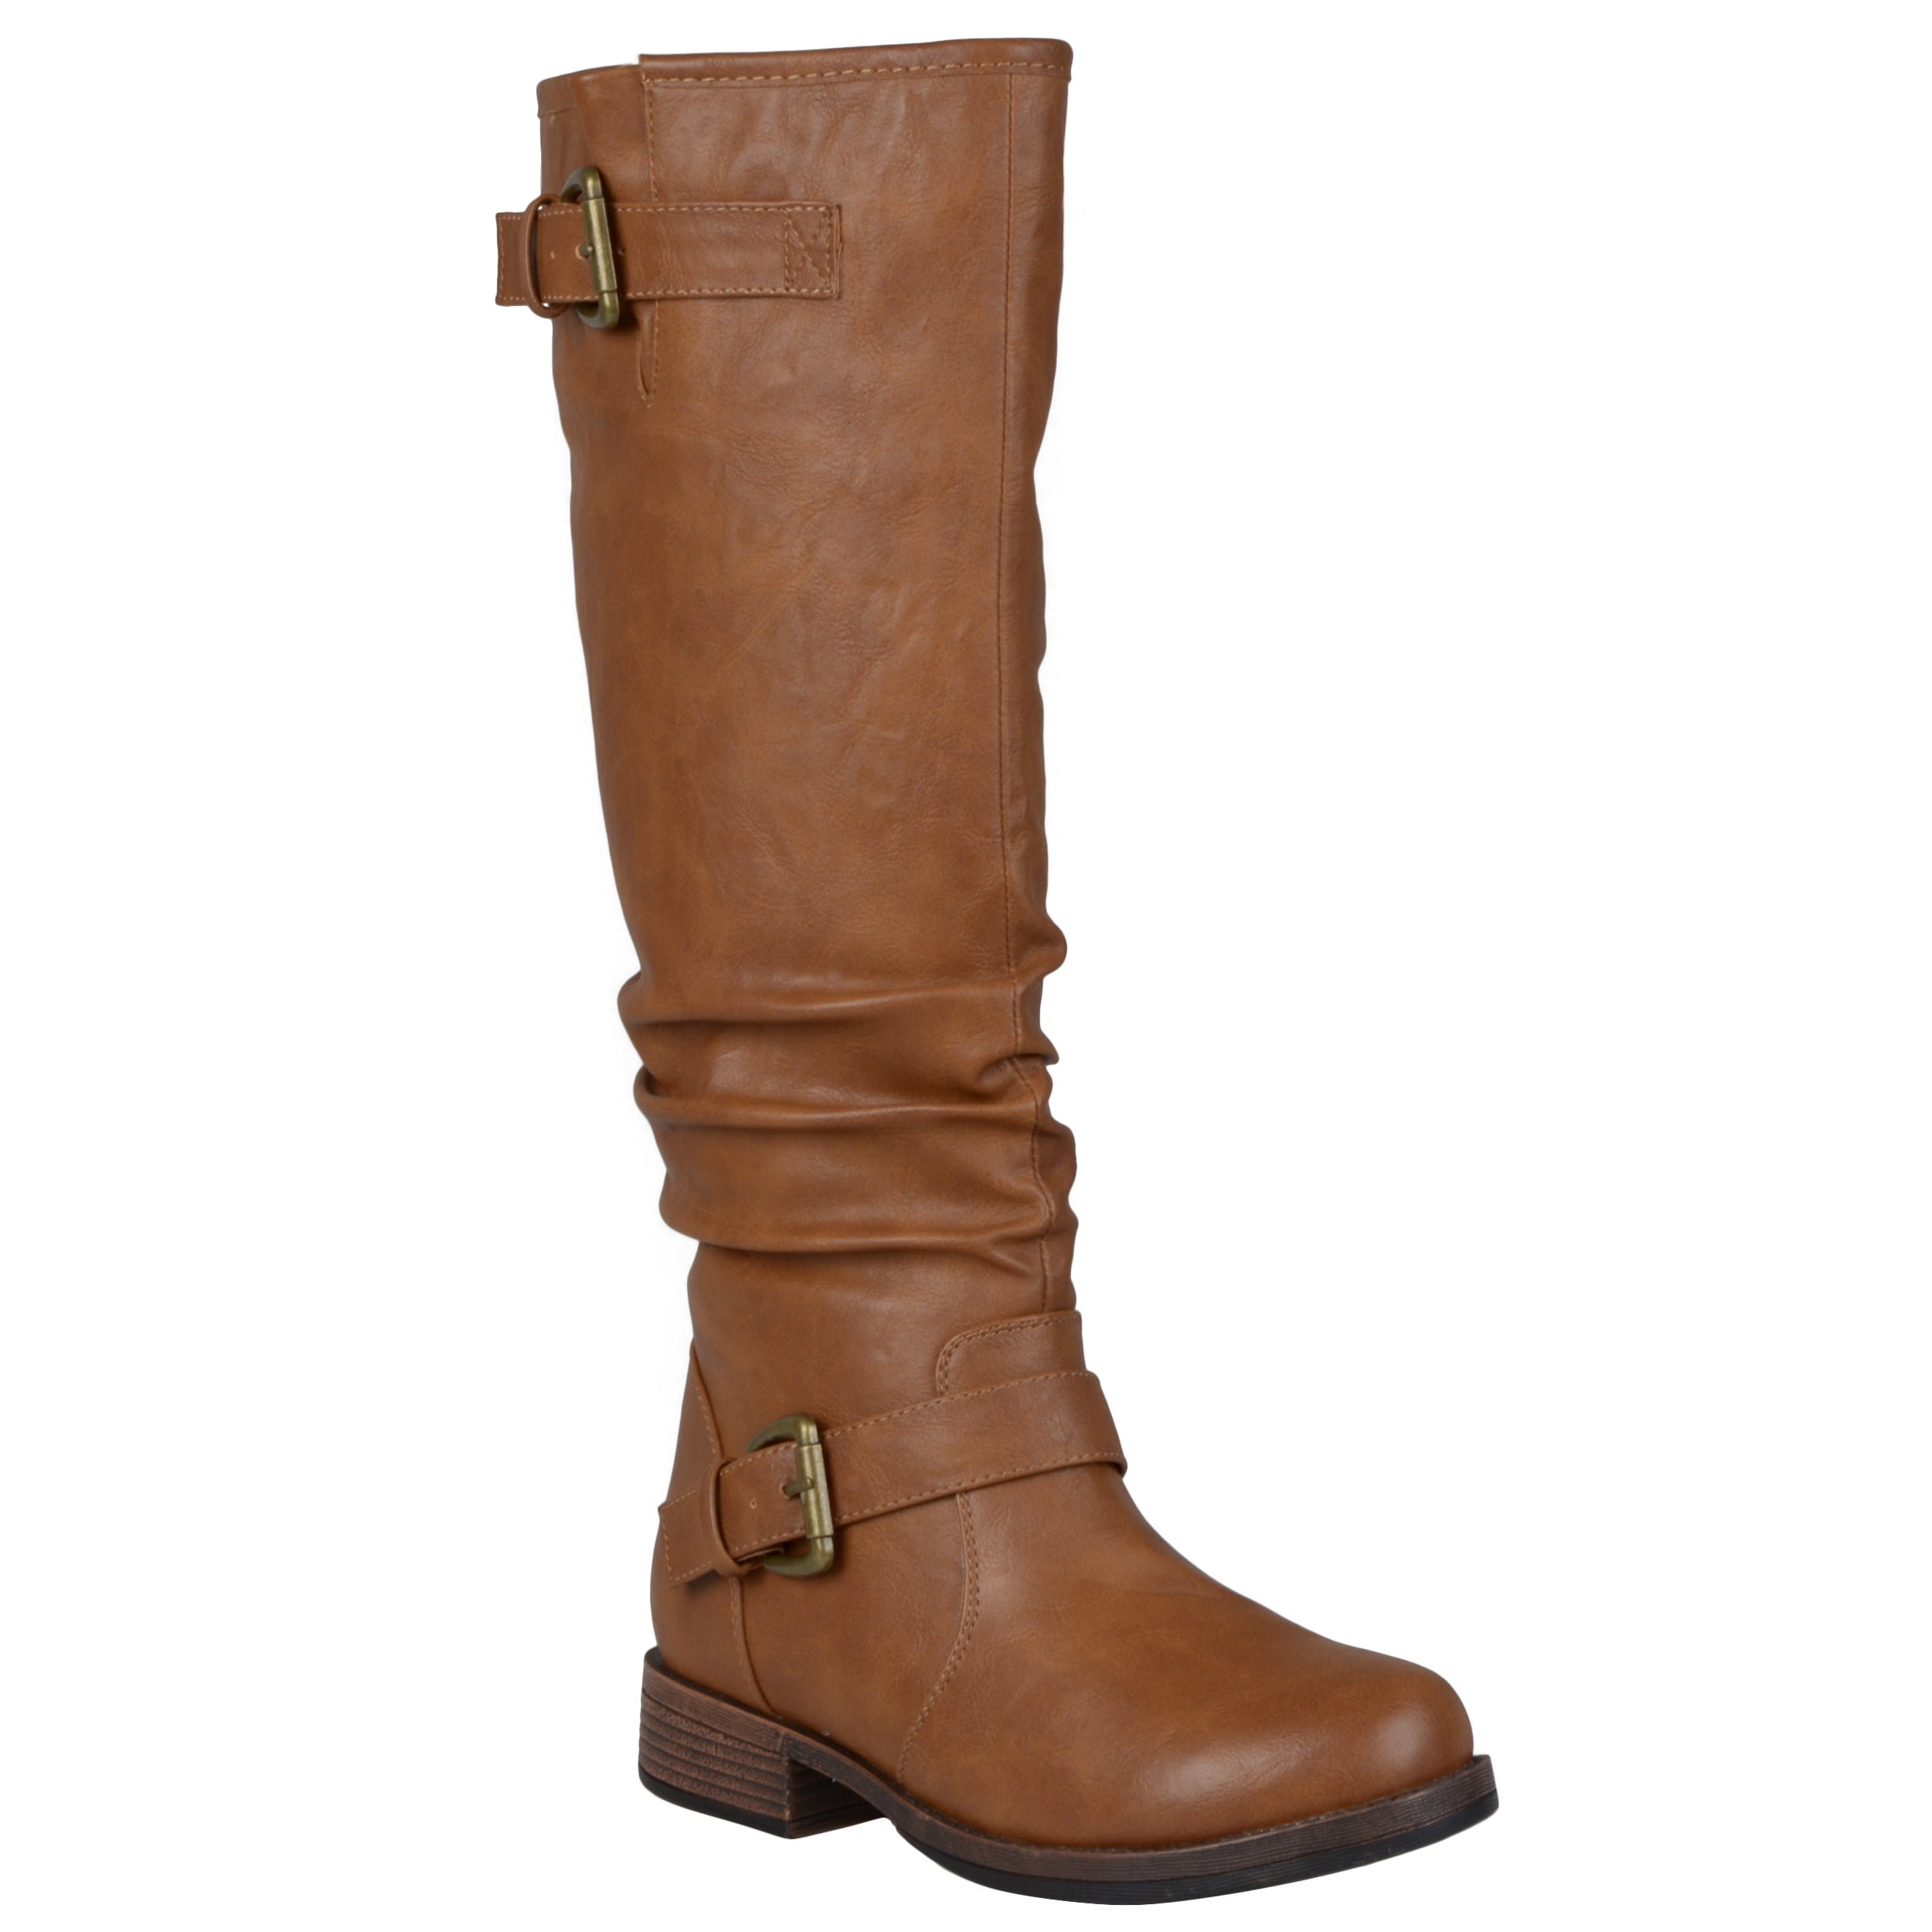 fd7920d682e8 Brinley Co. Womens Regular and Wide-Calf Knee-High Buckle Riding Boot